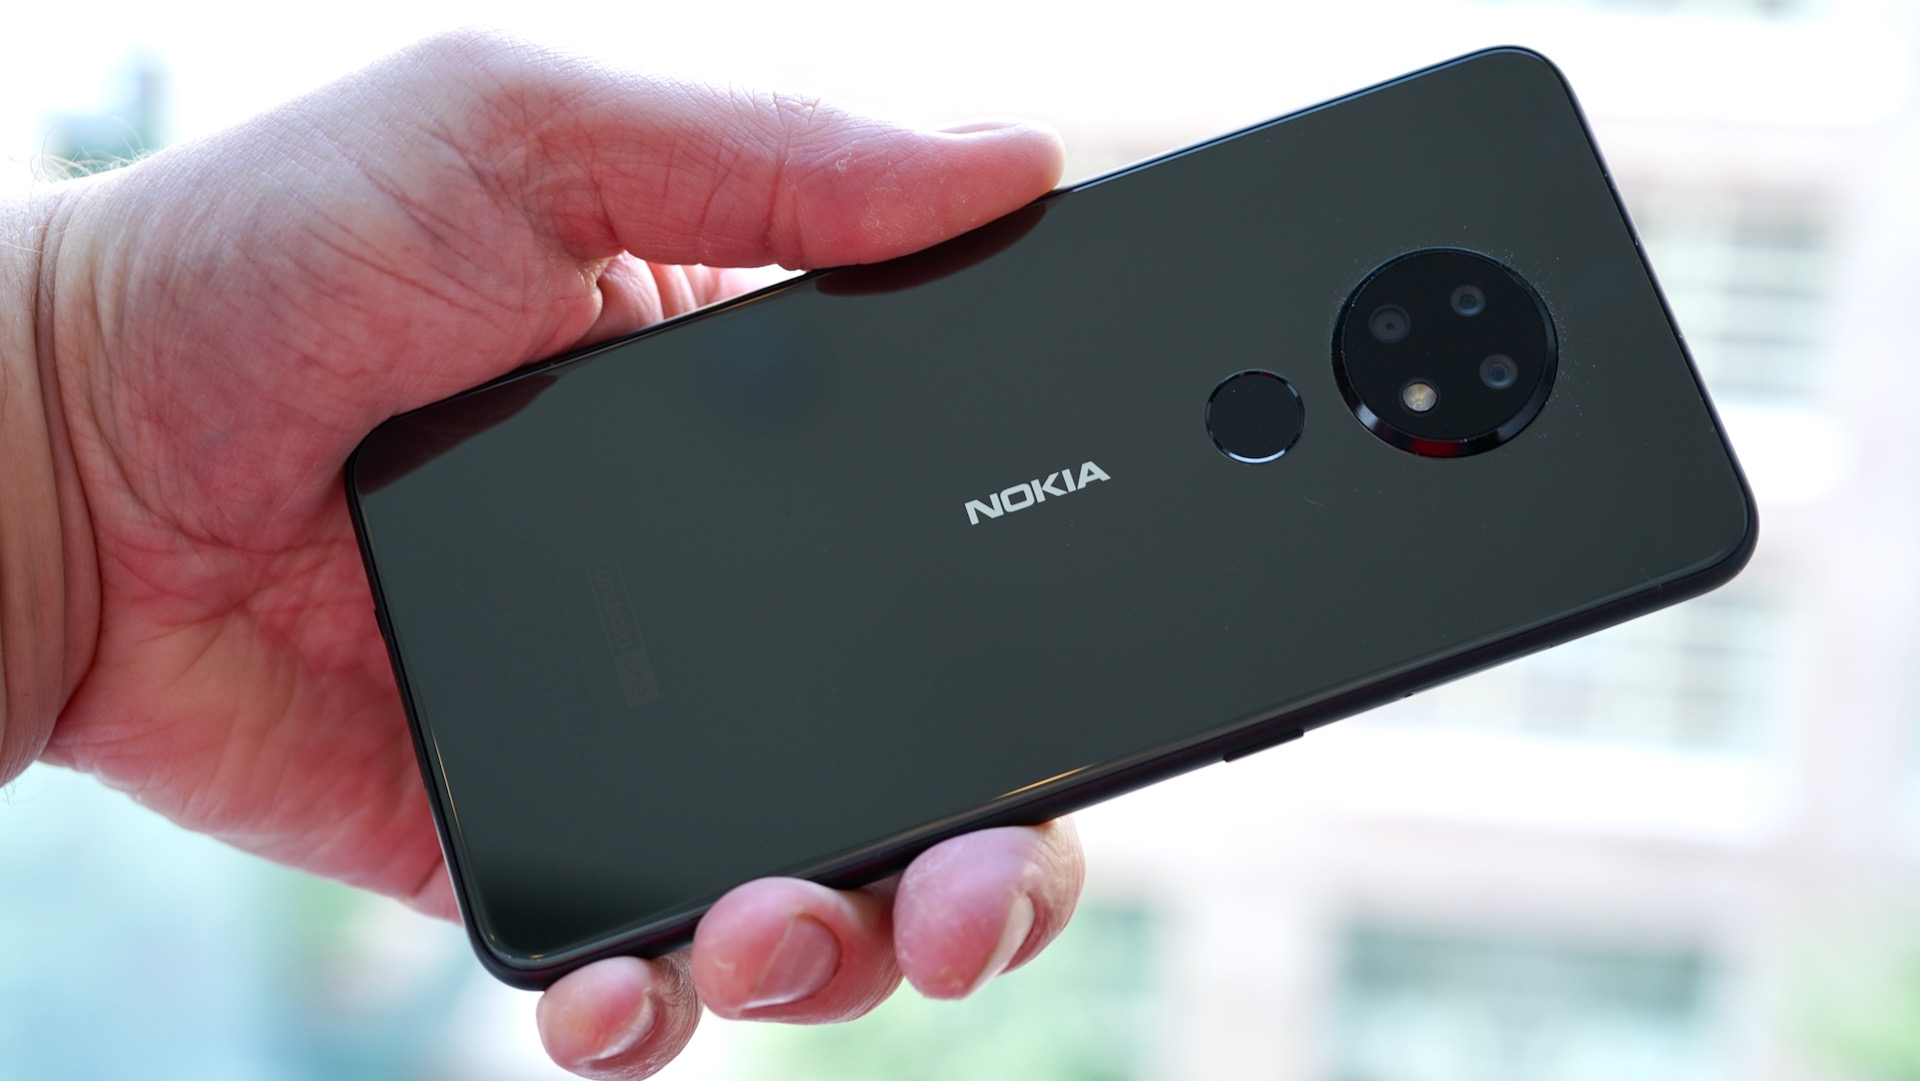 Nokia 6 2 Specifications And Price In Kenya